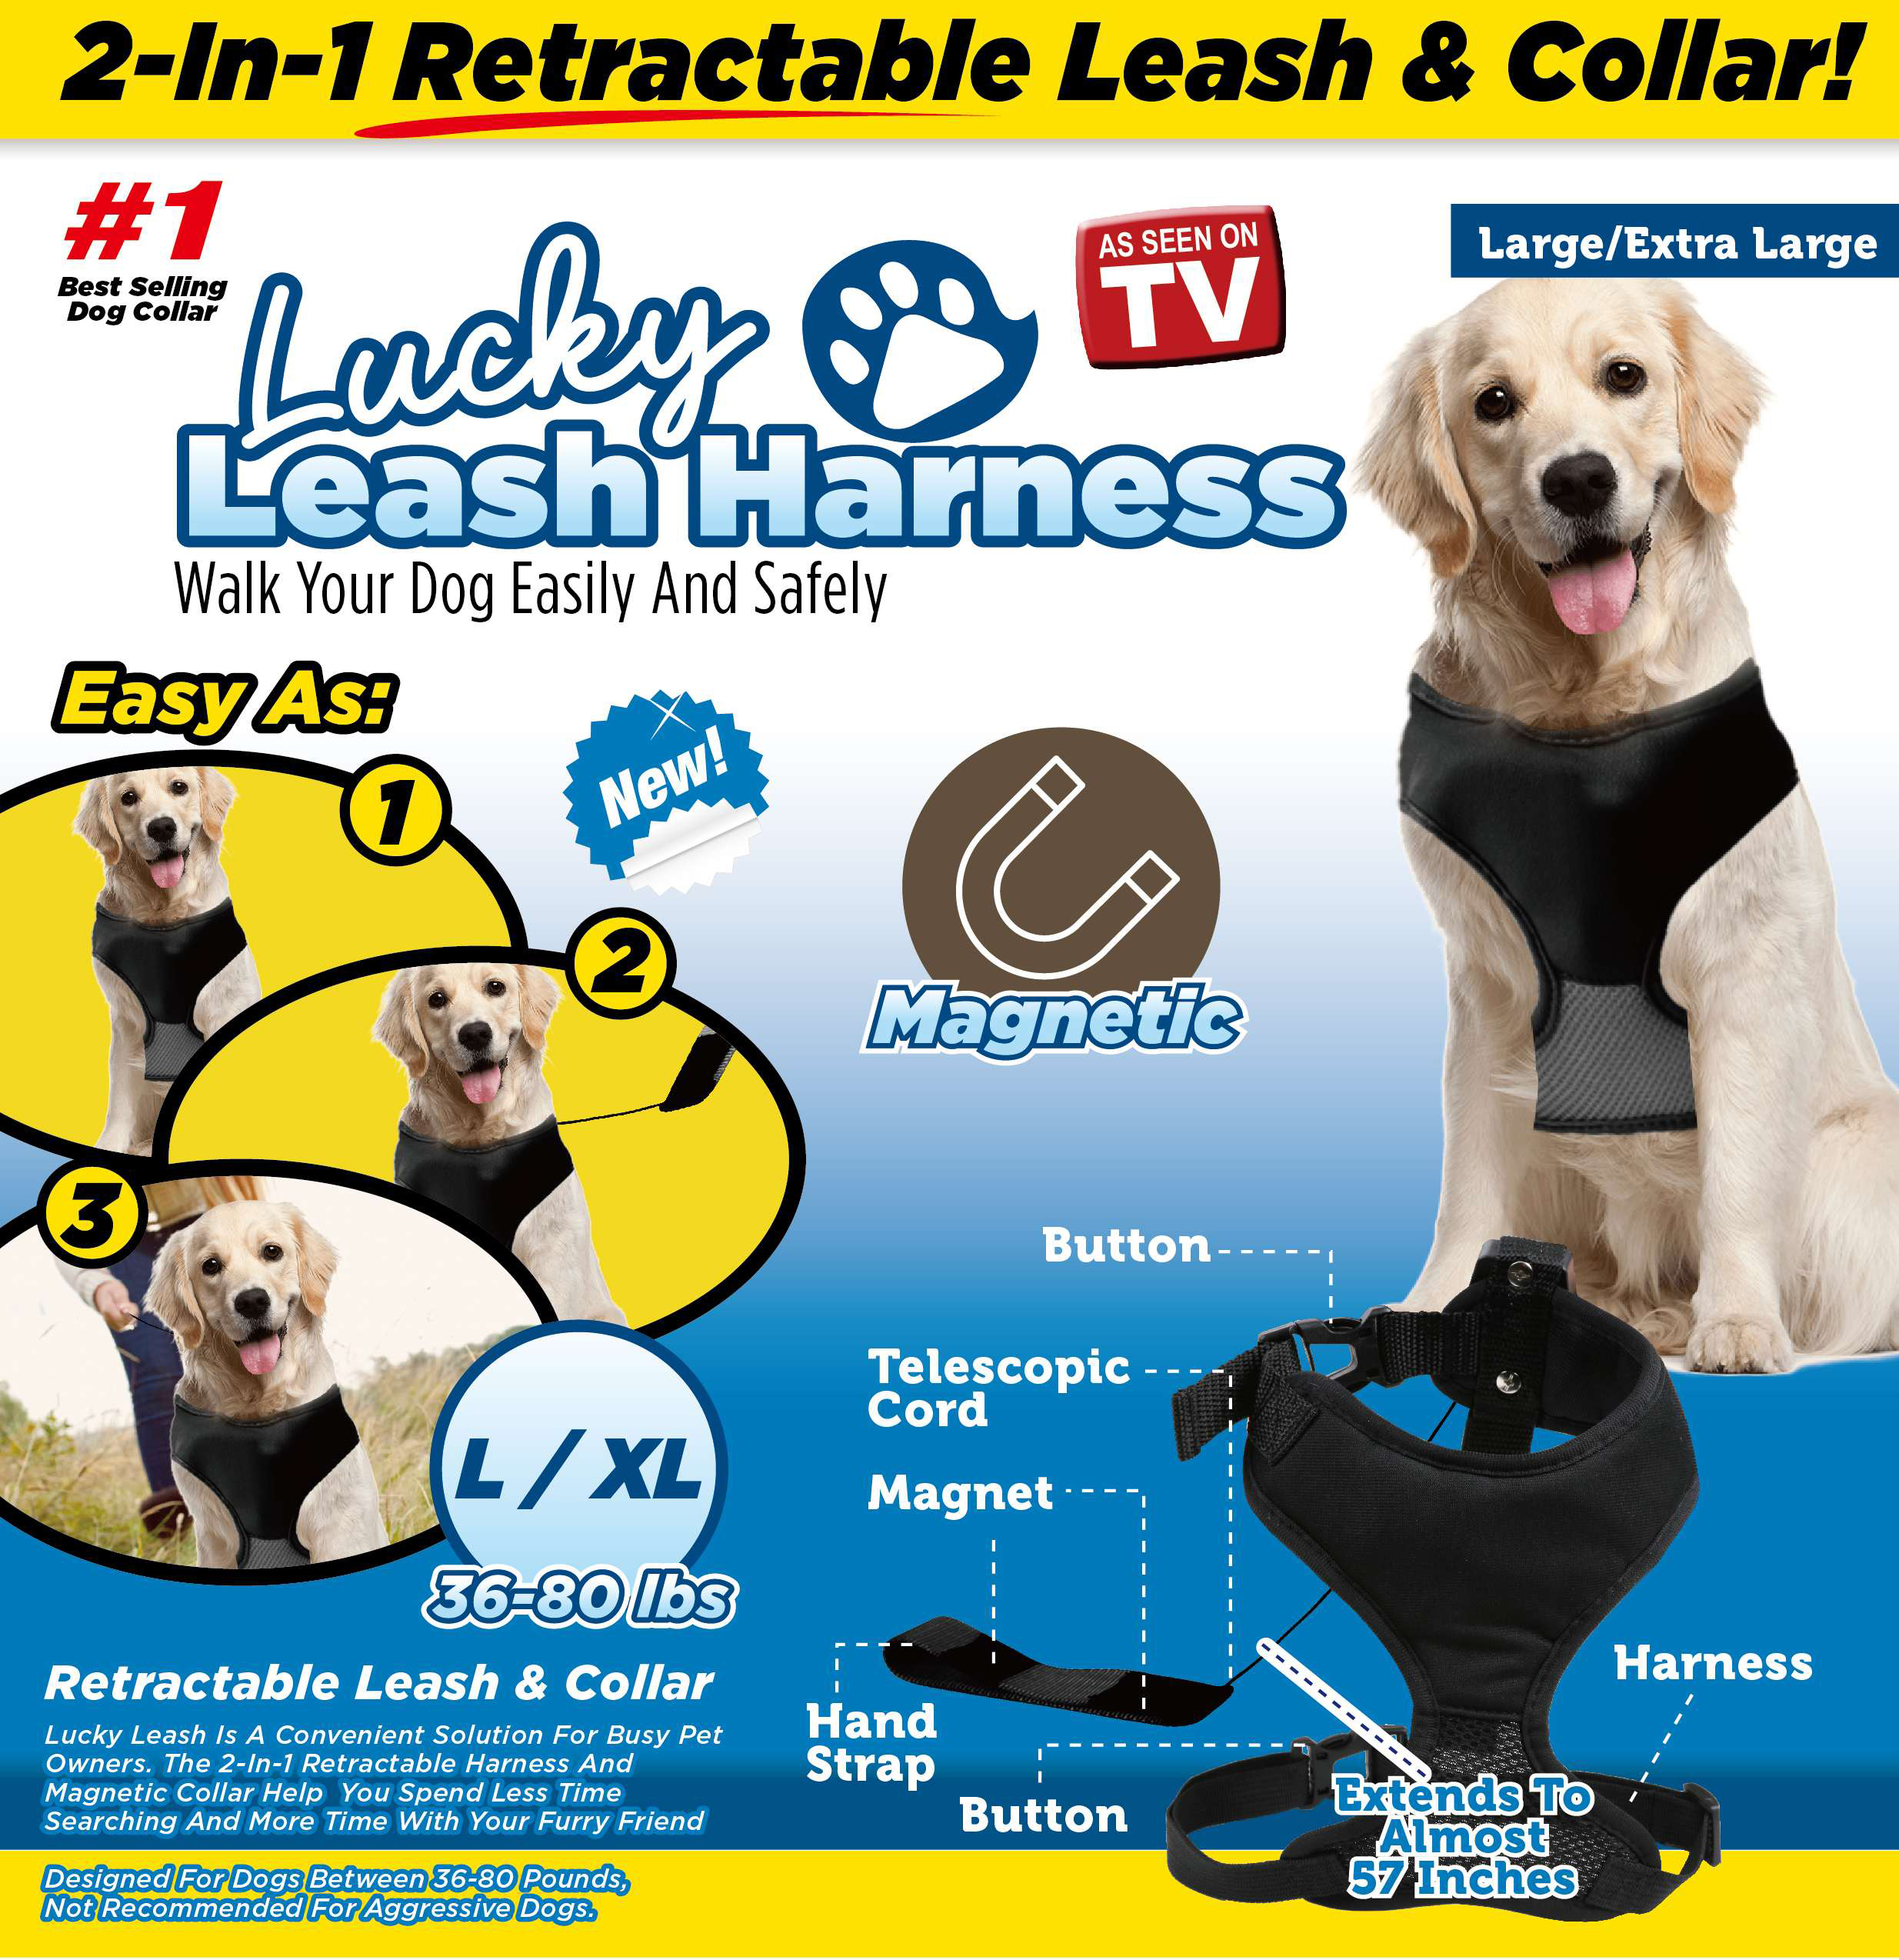 As Seen on TV Lucky Leash Magnetic Harness & Retractable Leash - Size L/XL (36 - 80 lbs)